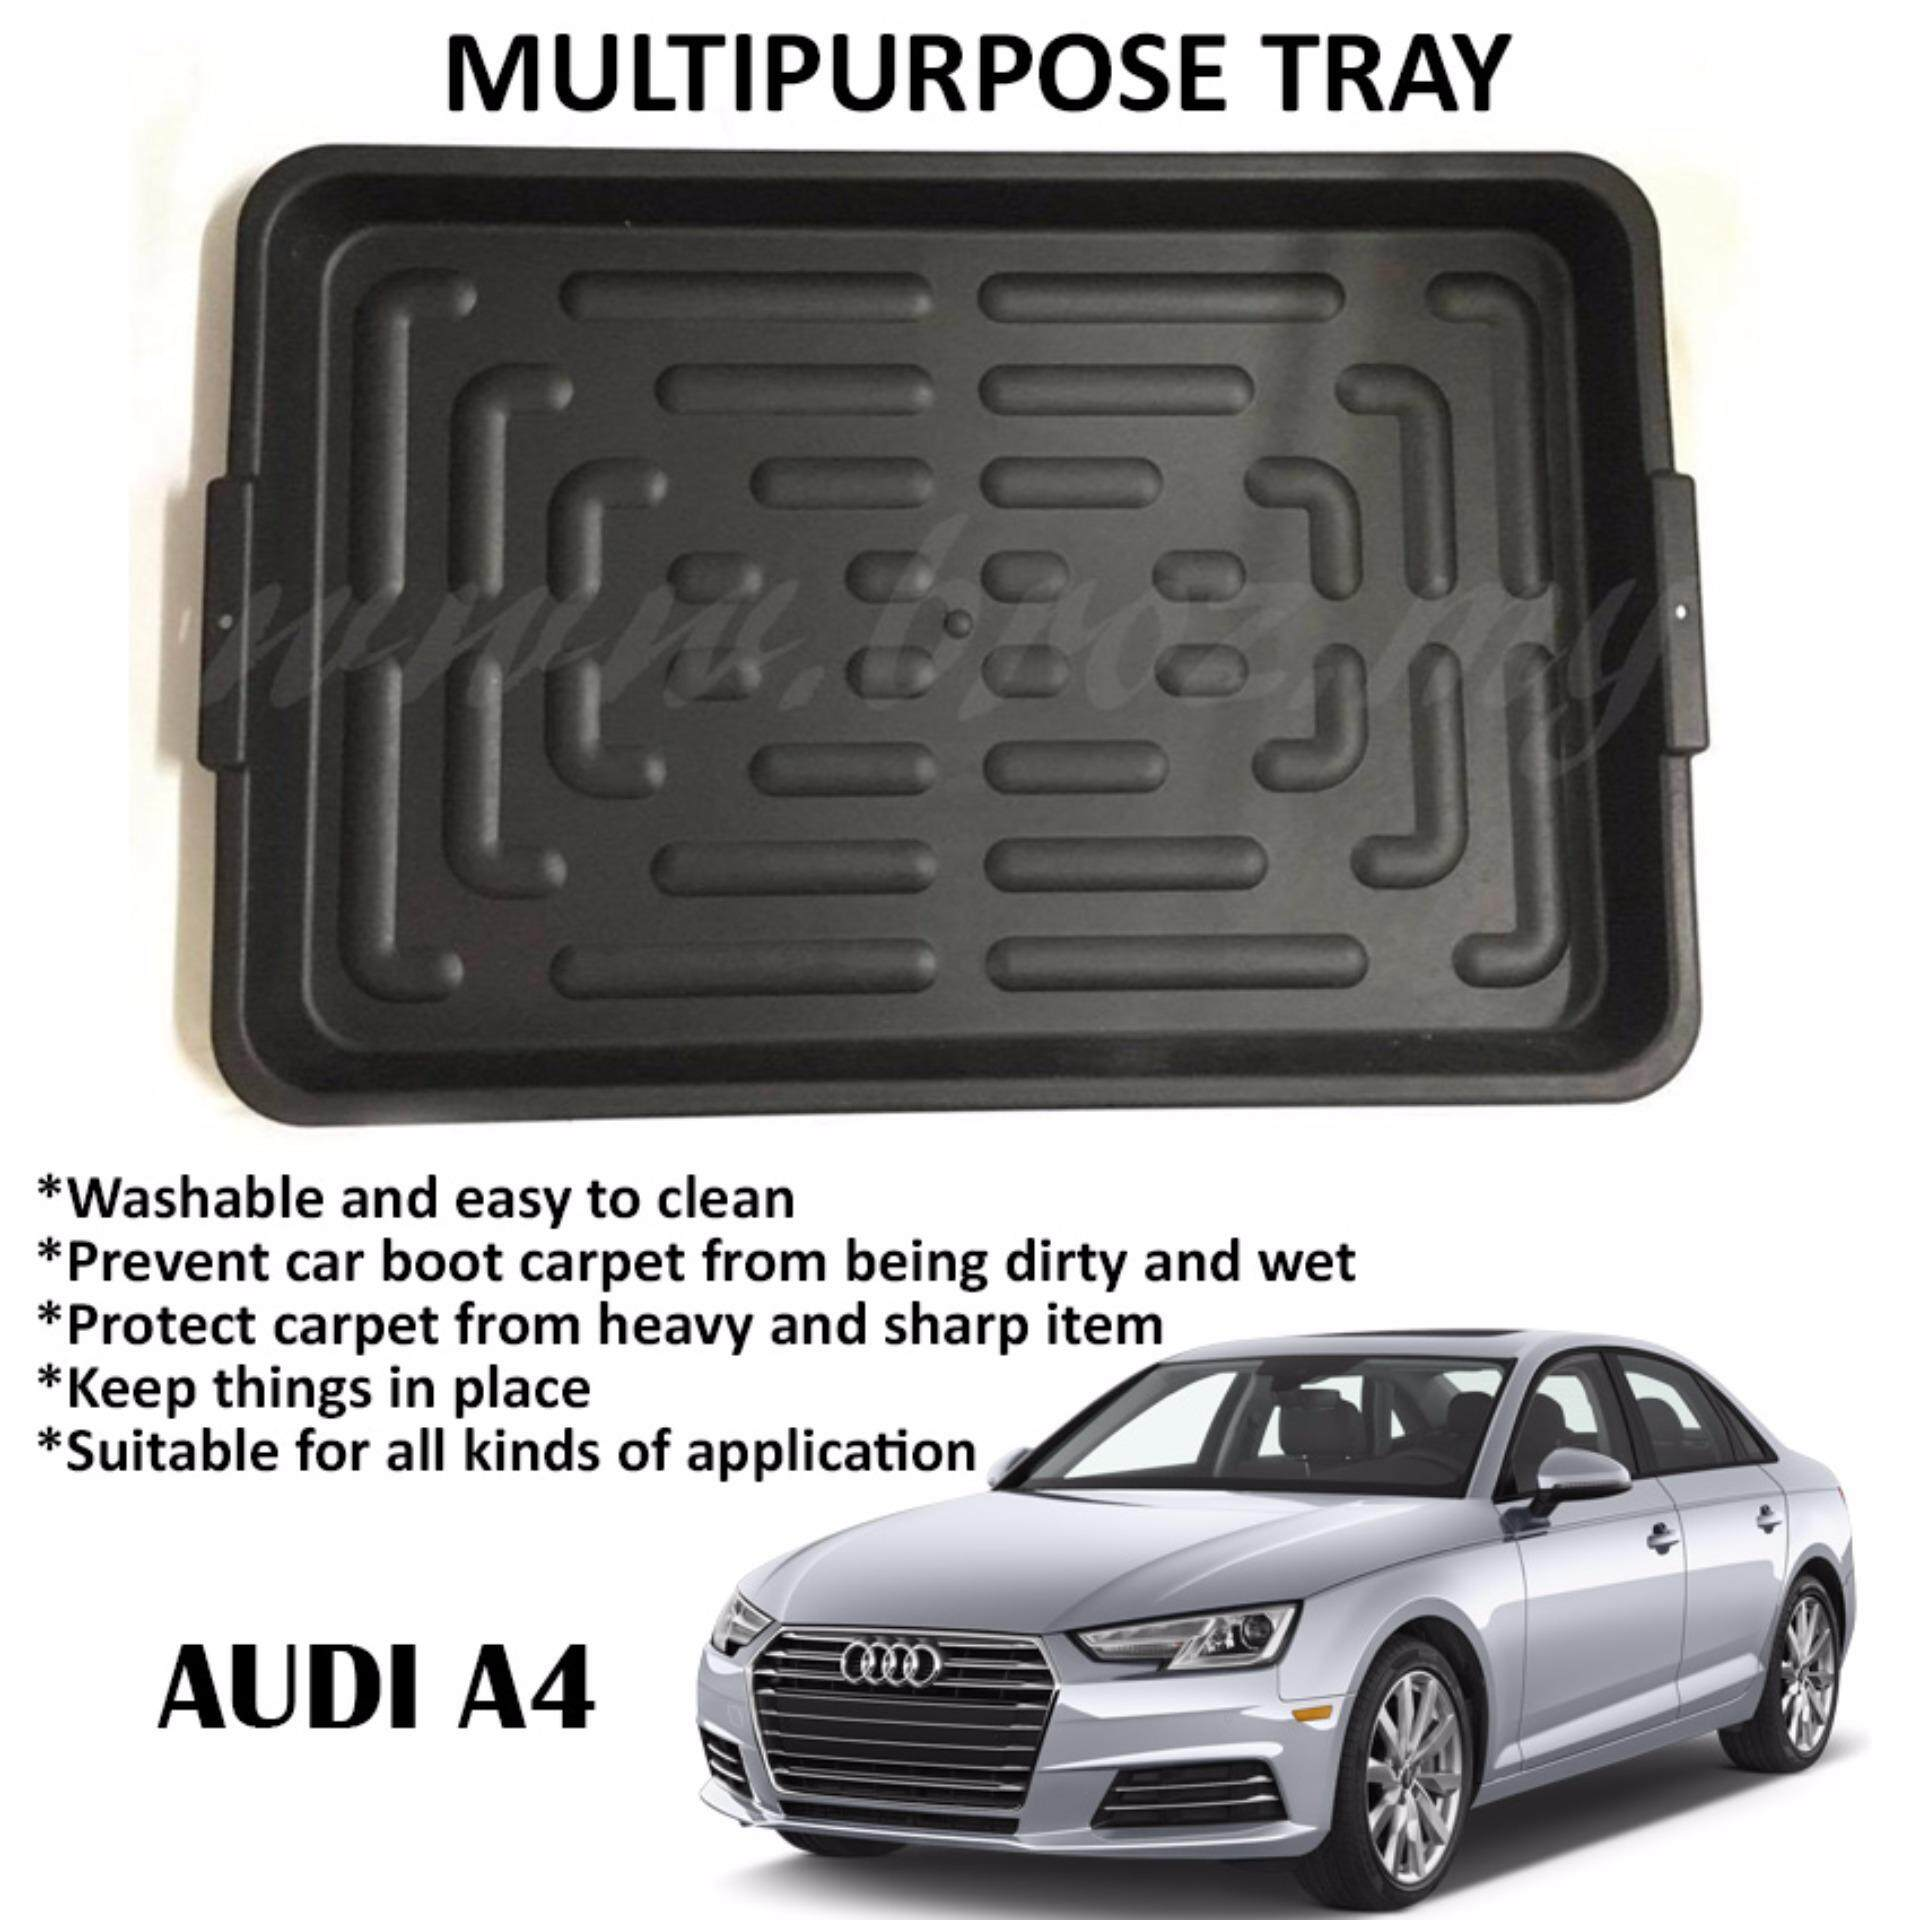 Audi A4 Multipurpose Universal One Tray For All Purpose - For Car Rear Boot (90 x 59 x 6.5cm)